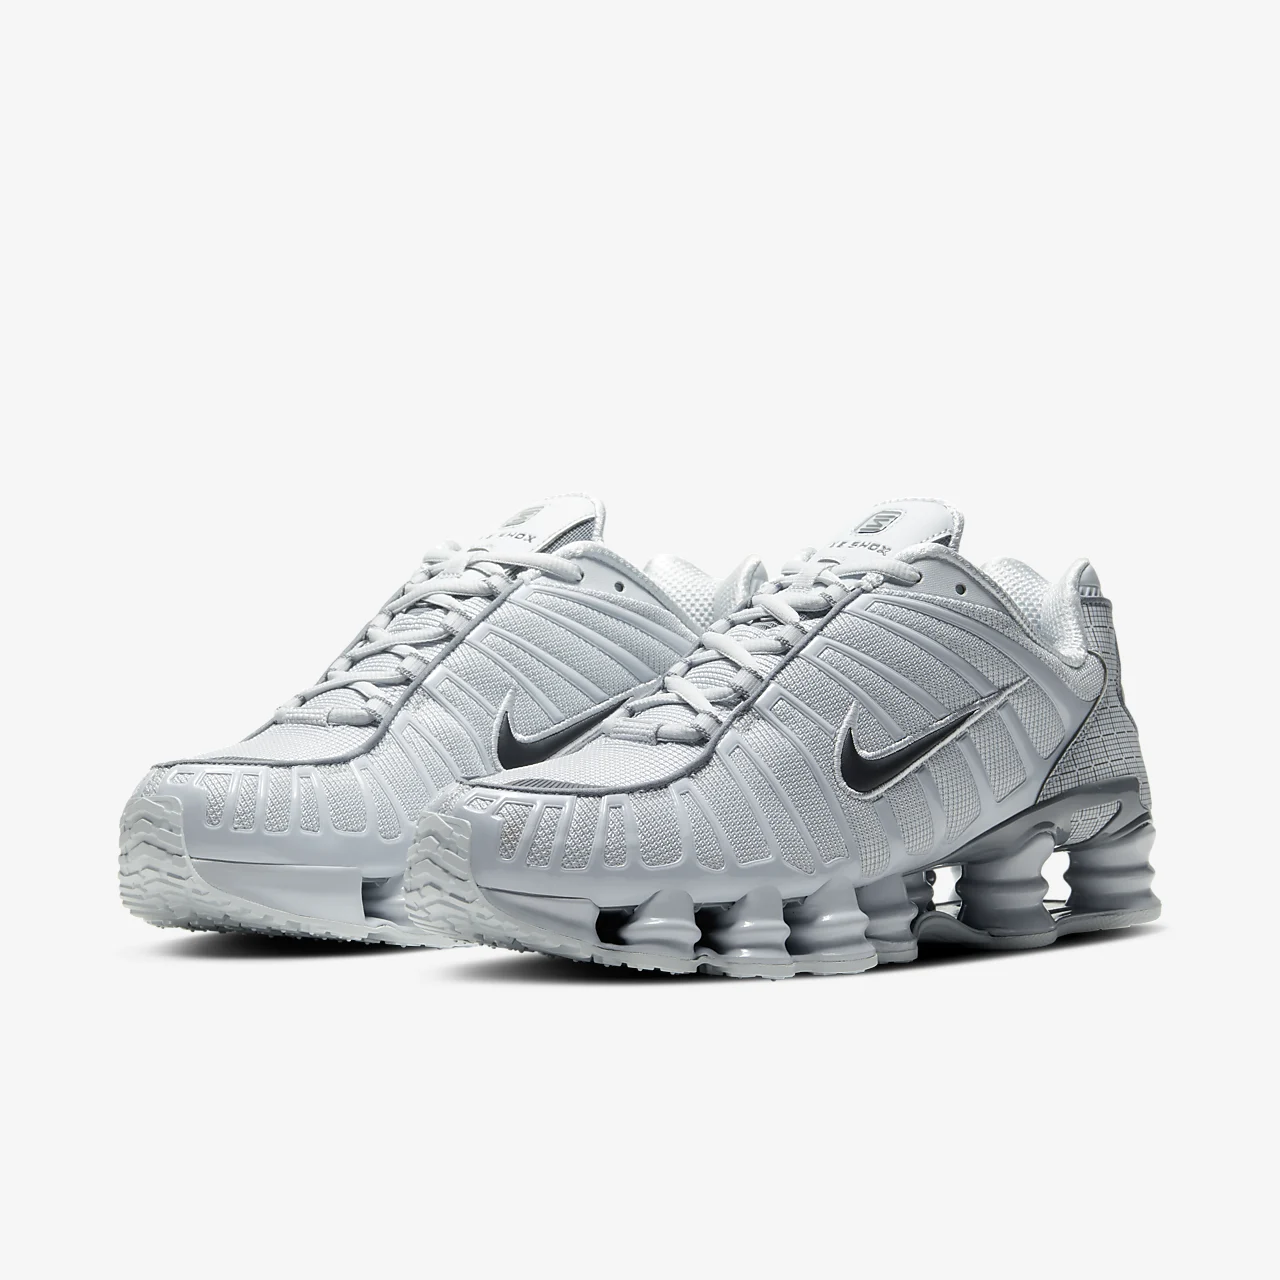 유럽직배송 나이키 NIKE Nike Shox TL Men's Shoe CT3448-001